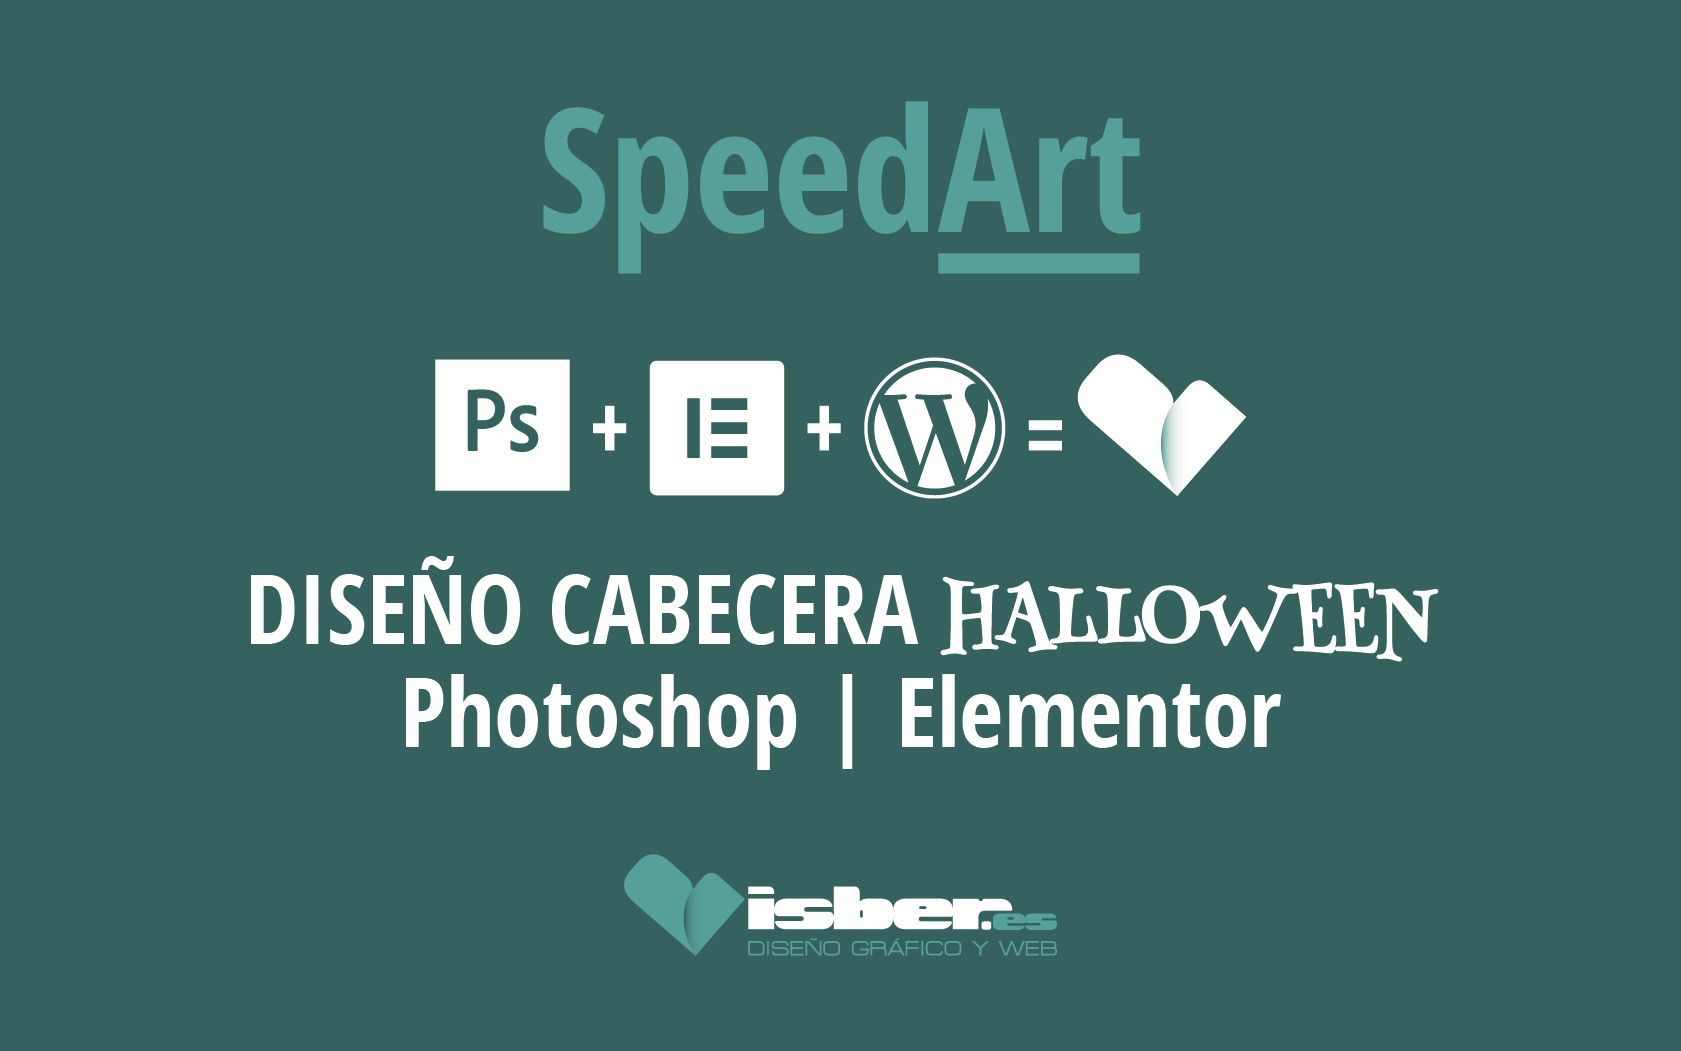 SpeedArt cabecera halloween Lambiques | photoshop | wordpress | elementor